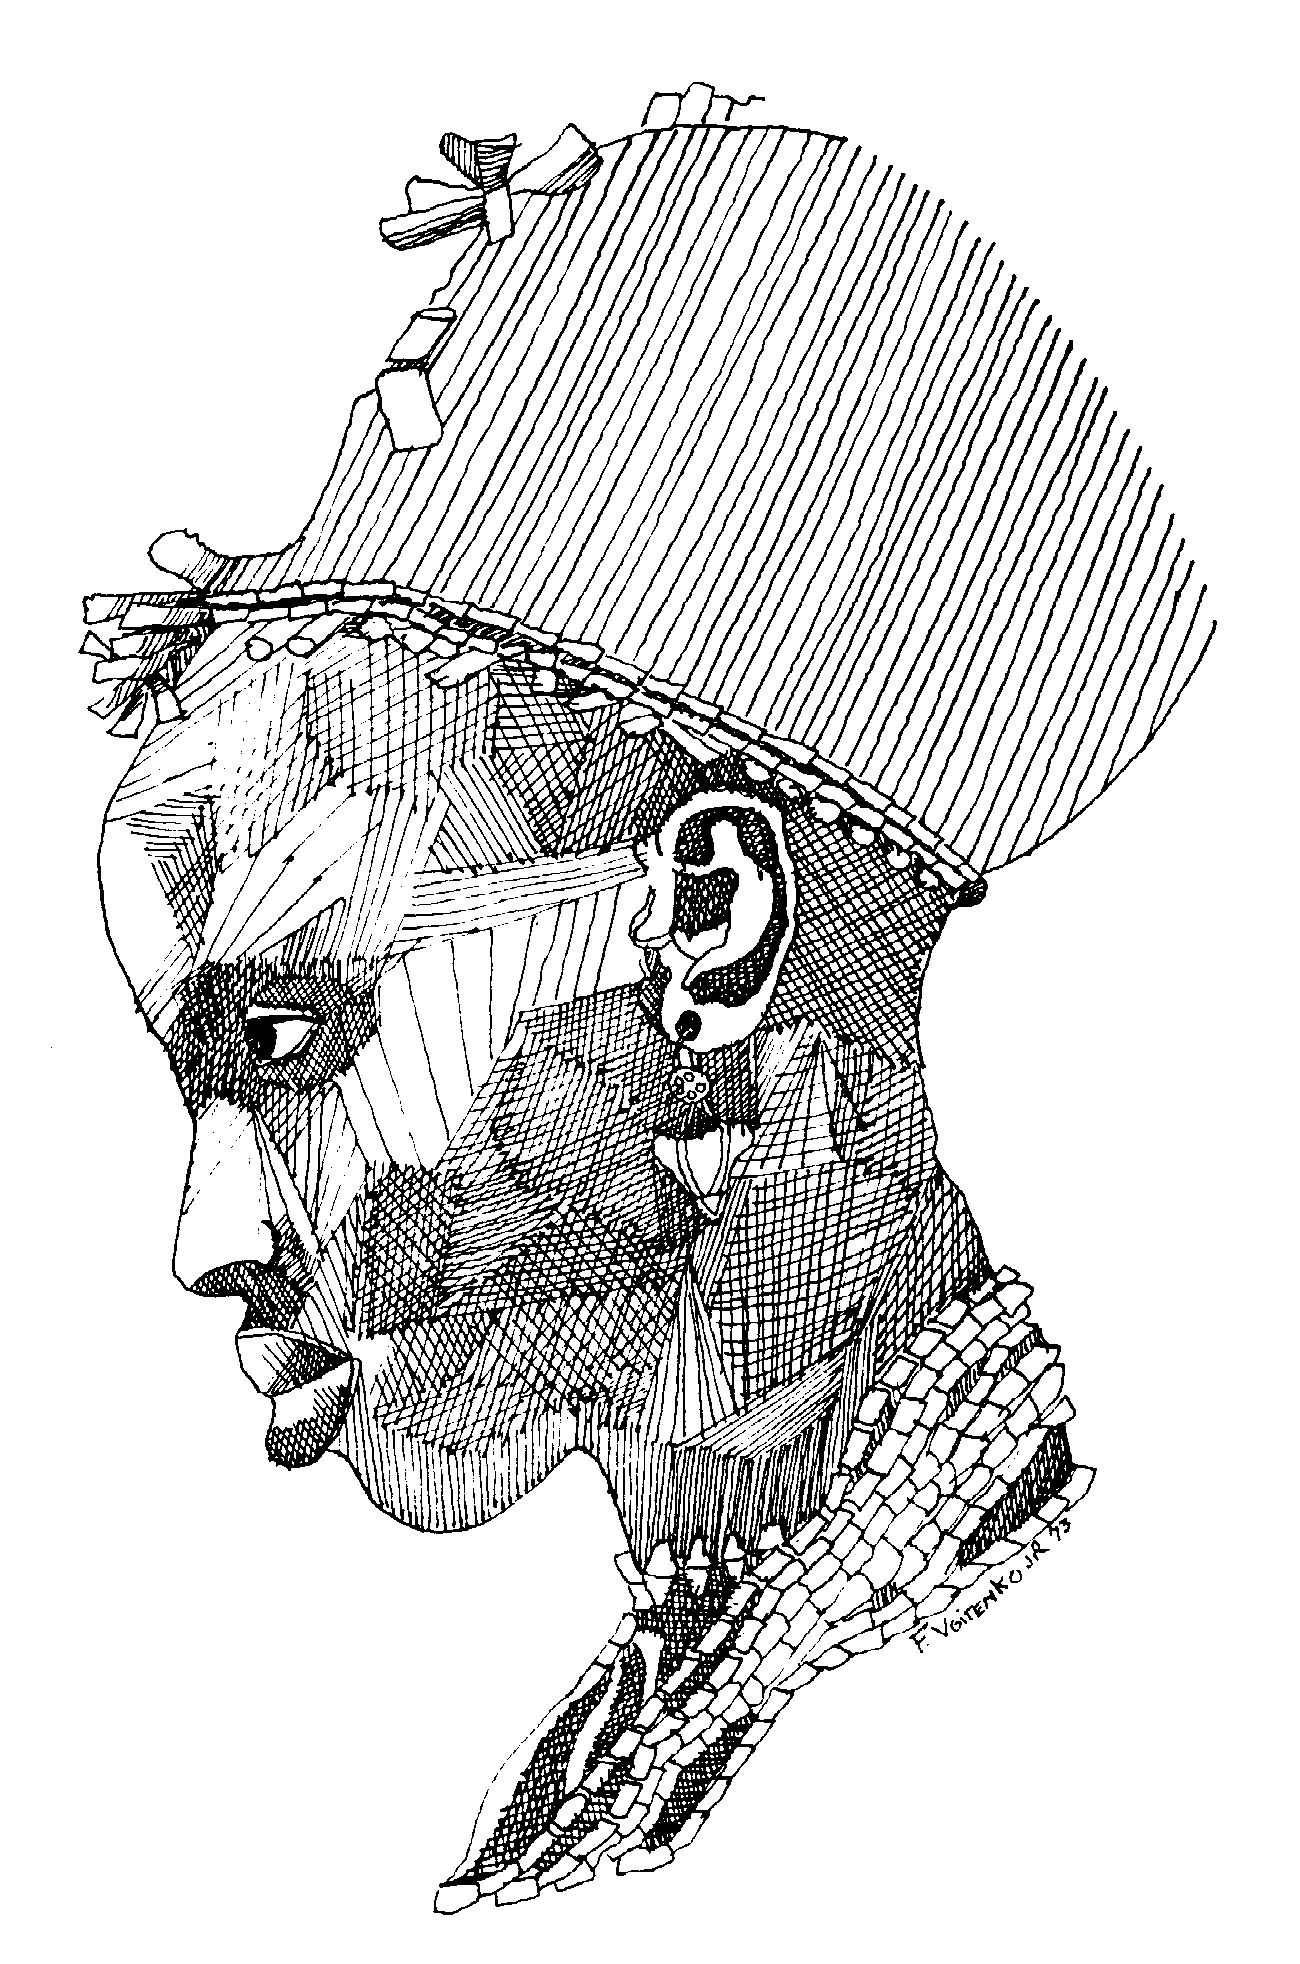 pen and ink art work by fred voitenko